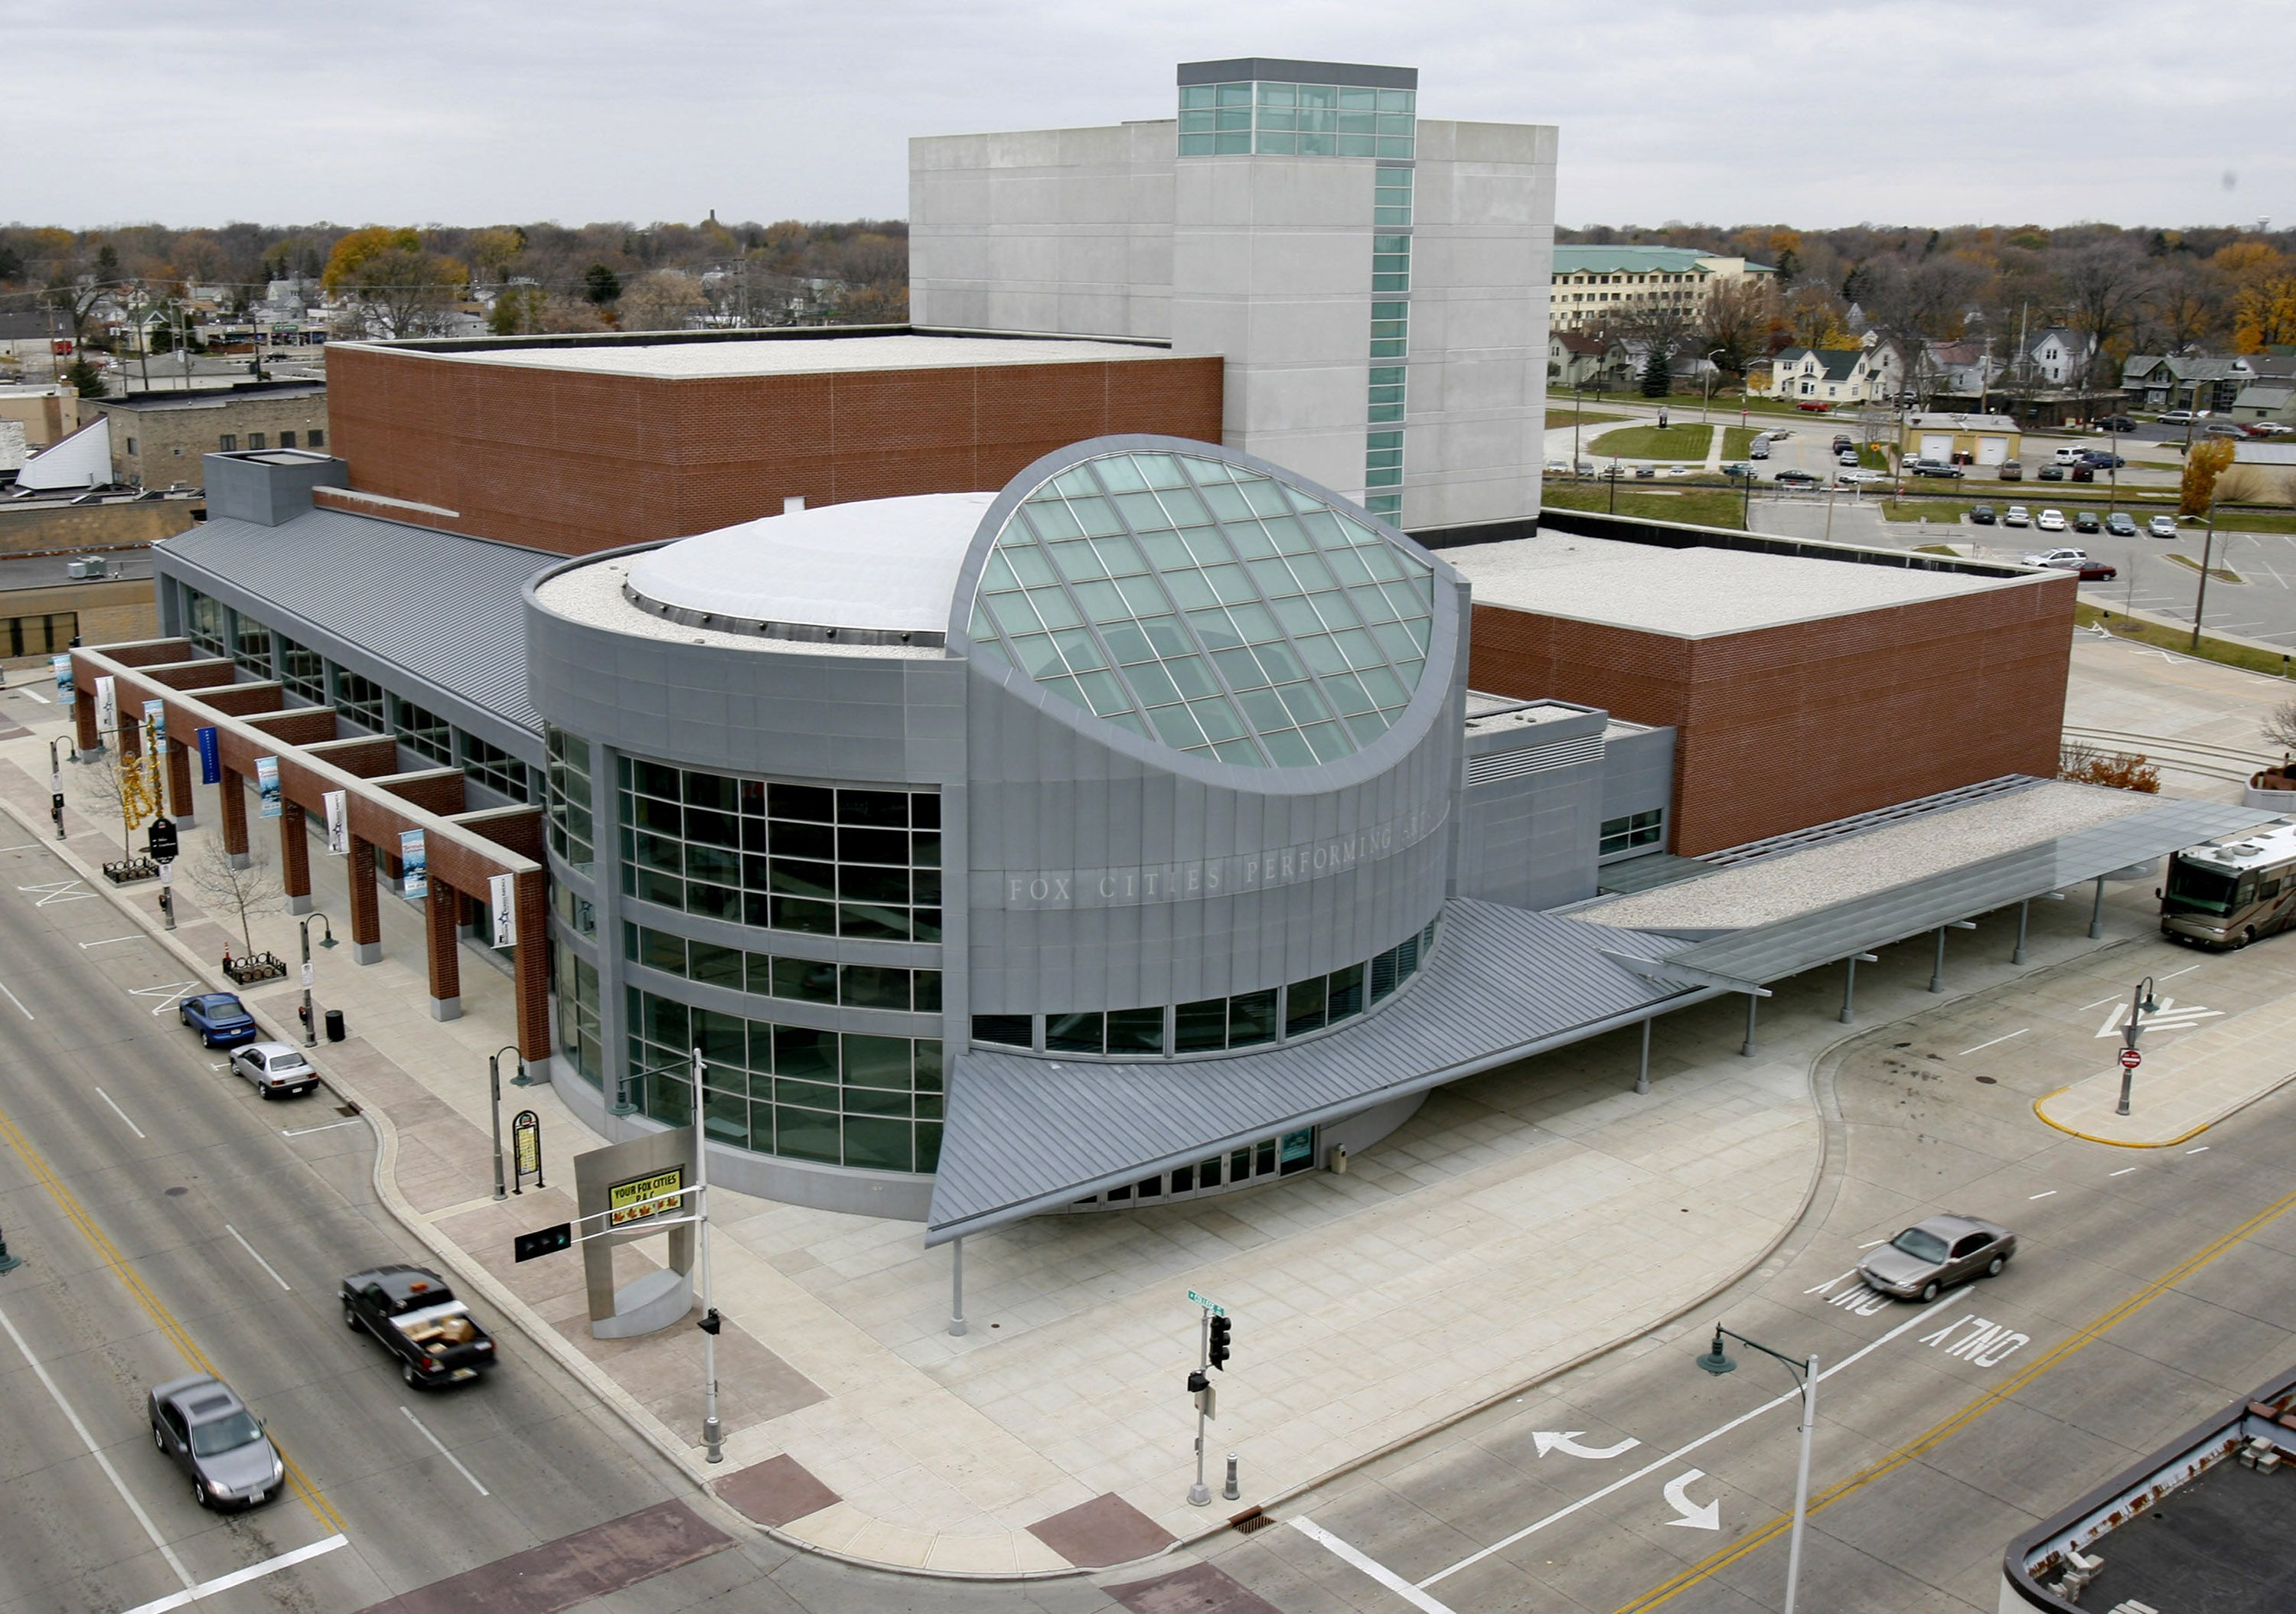 The Fox Cities Performing Arts Center in Appleton will host Wednesday's Wisconsin High School Sports Awards show. The event kicks off at 6 p.m. with red carpet interviews. The awards program is slated for 7 p.m.